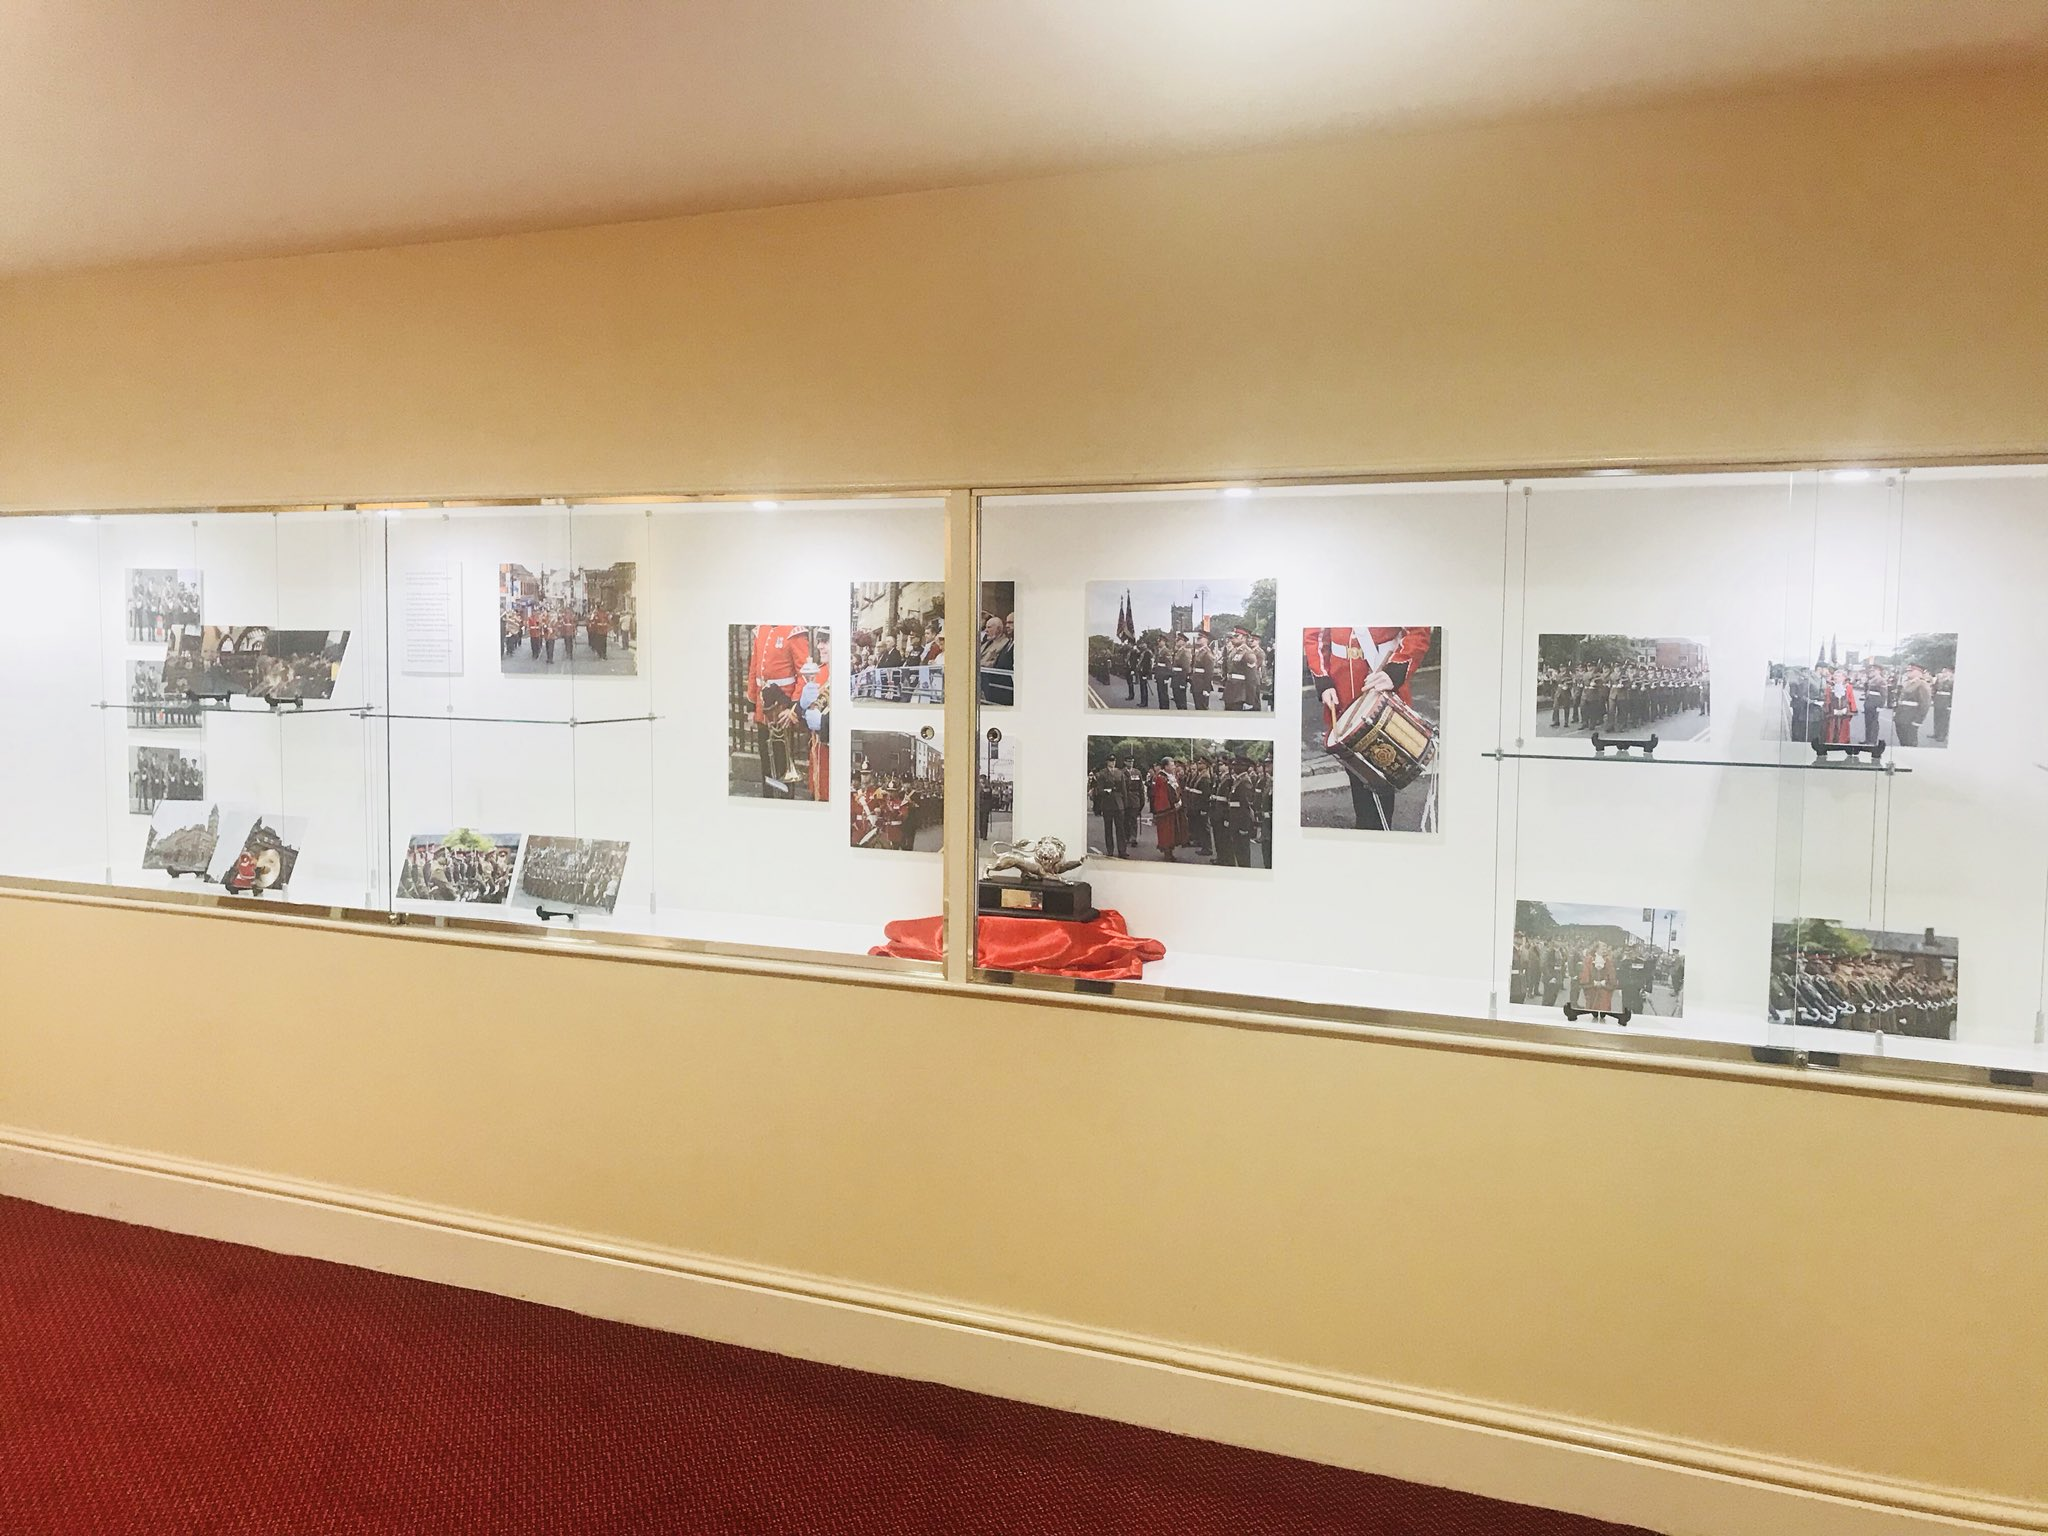 The Lions Of England display at Chorley Town Hall @LANCS_REGT @ChorleyCouncil https://t.co/XEkuproWUg